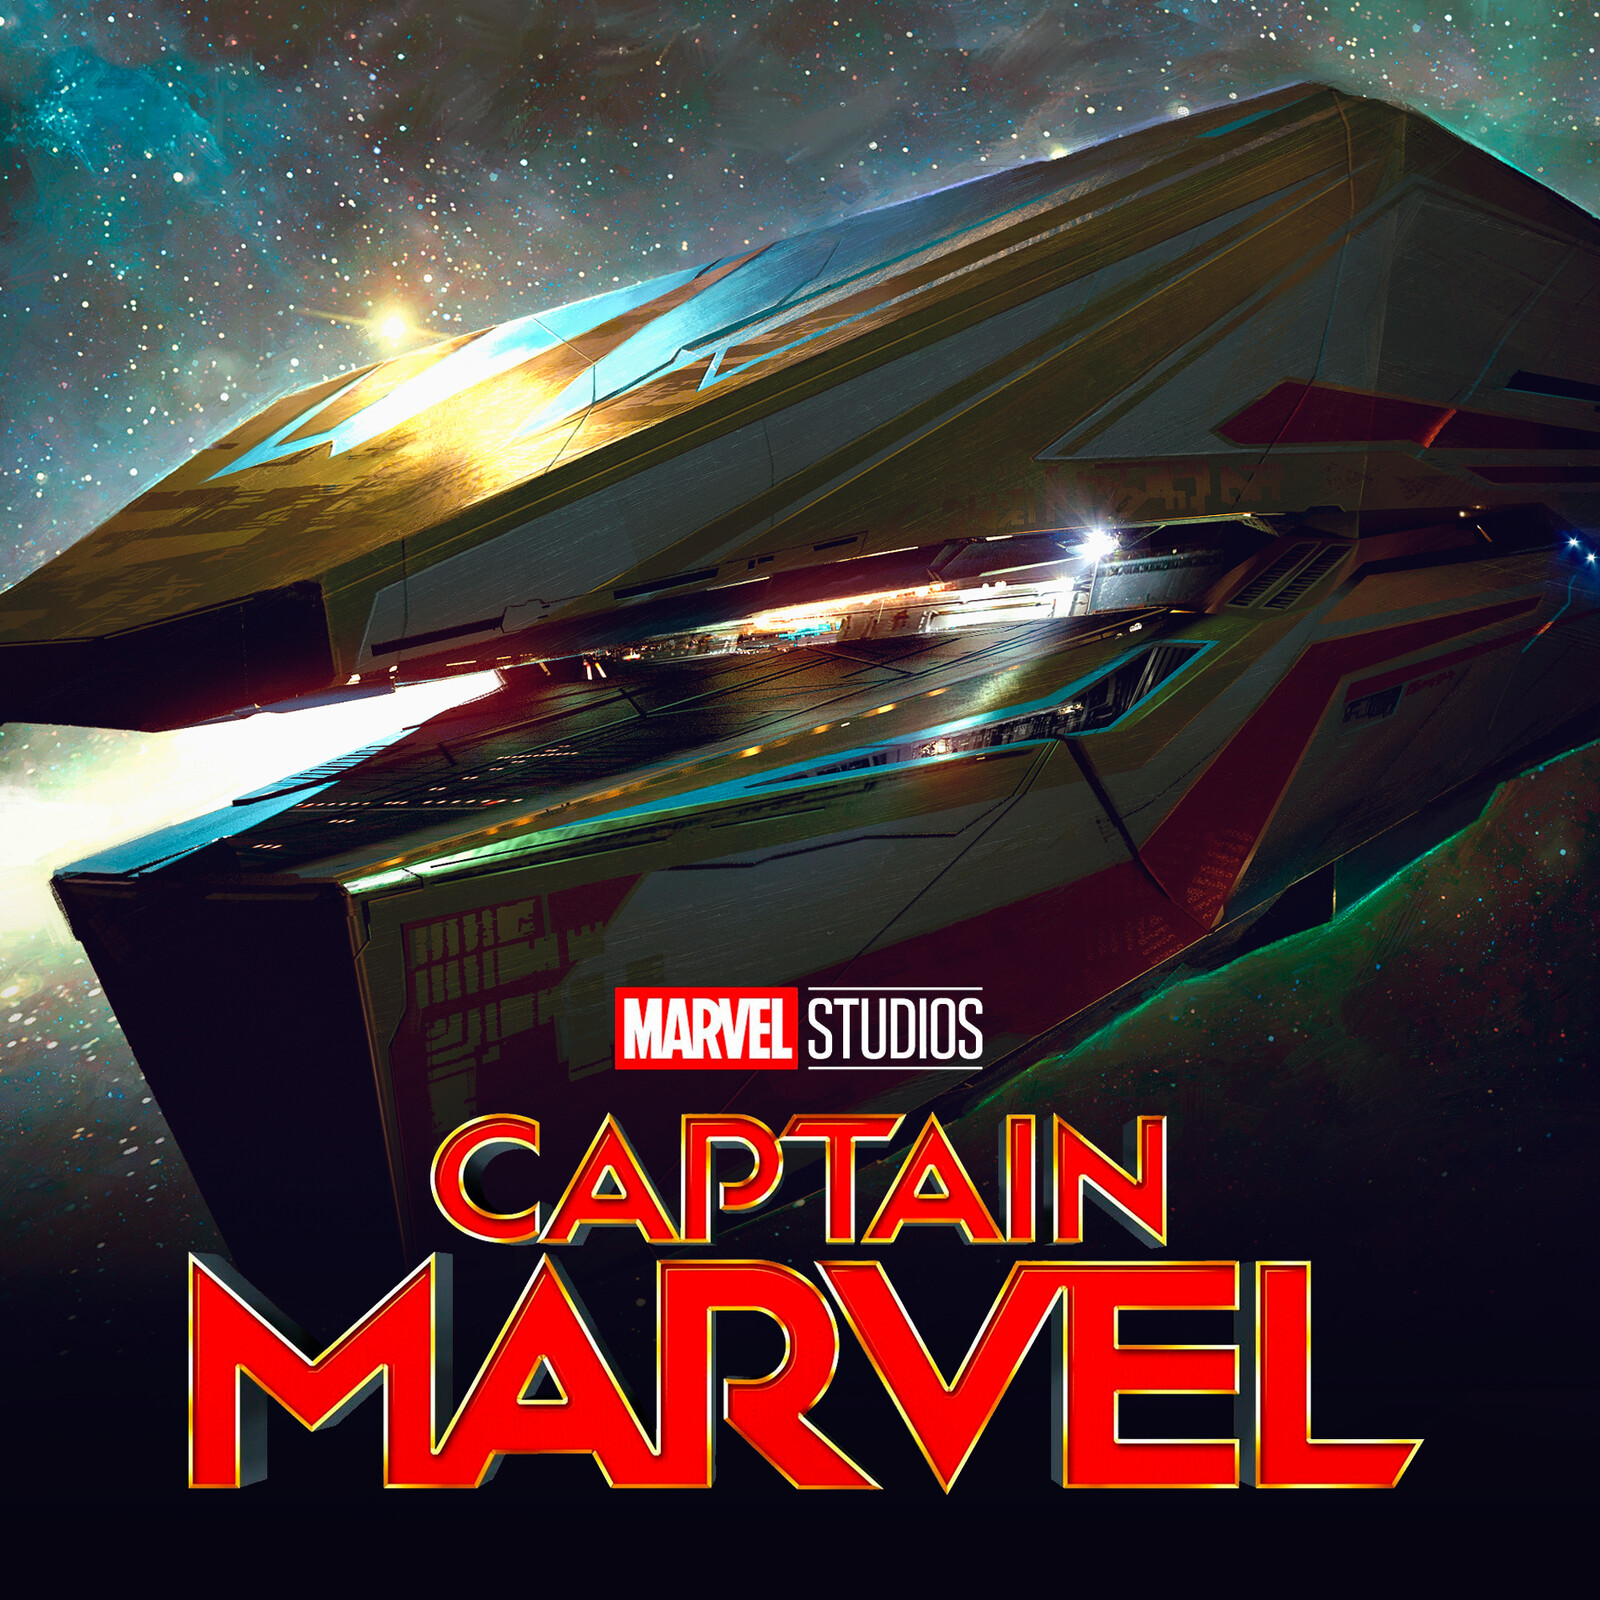 CAPTAIN MARVEL : Mar Vell's Imperial Cruiser